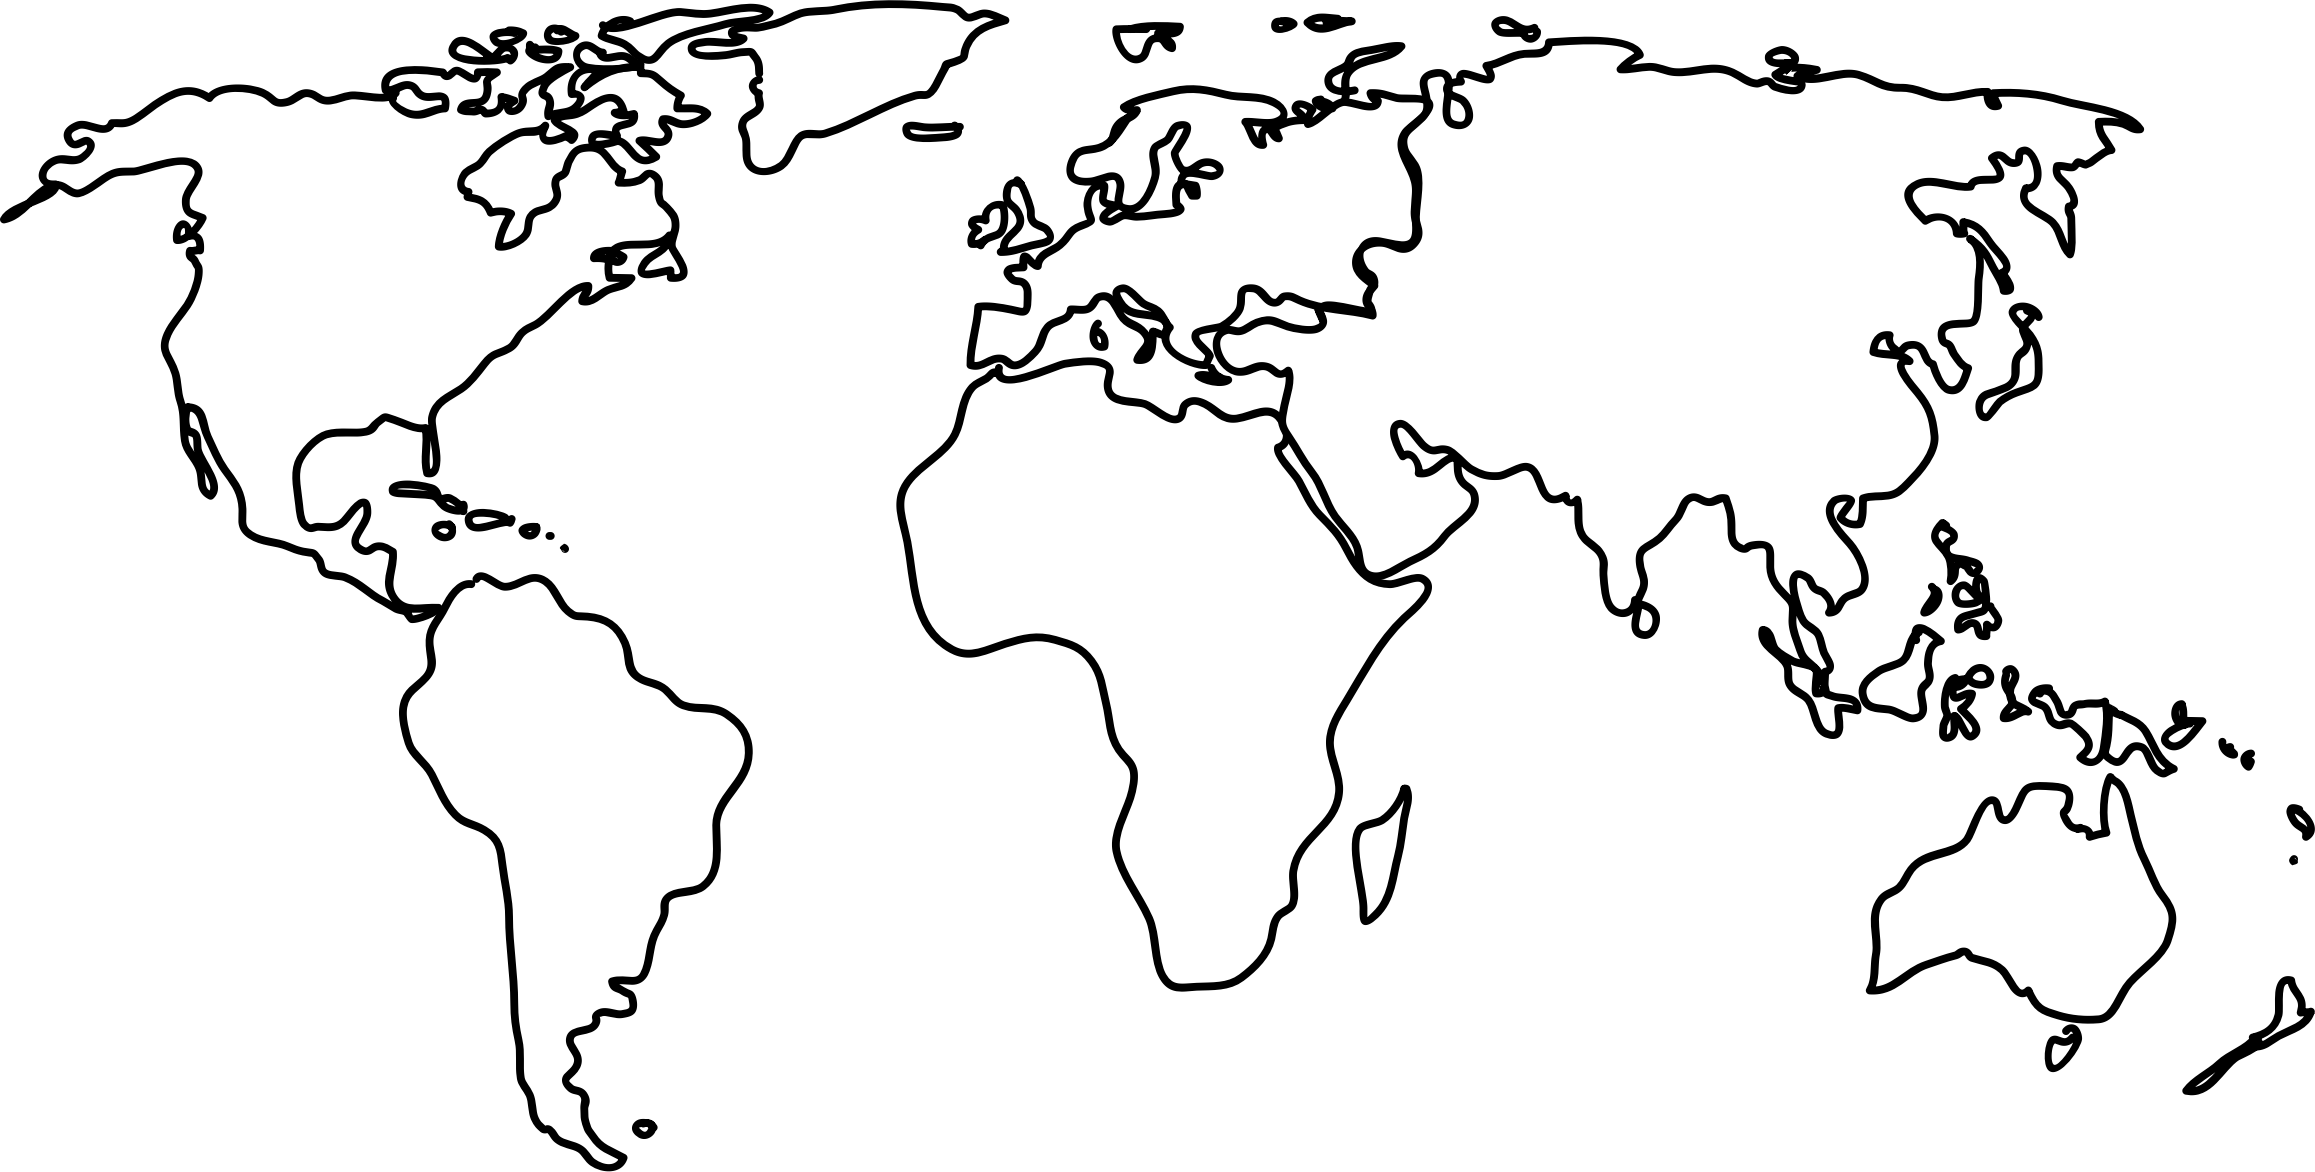 Continent clipart black and. Continents drawing image black and white download